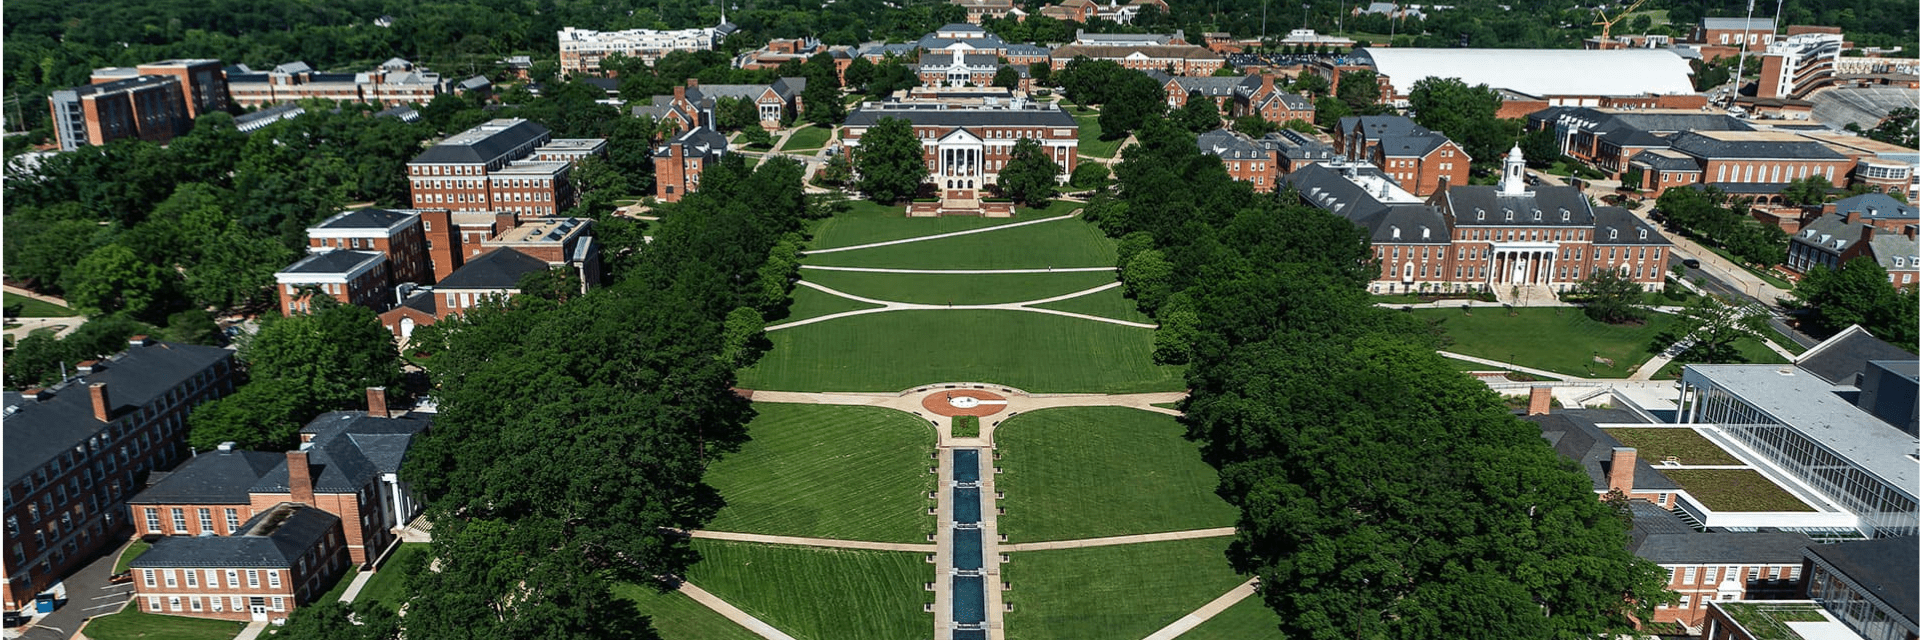 Overhead shot of McKeldin Mall during the day